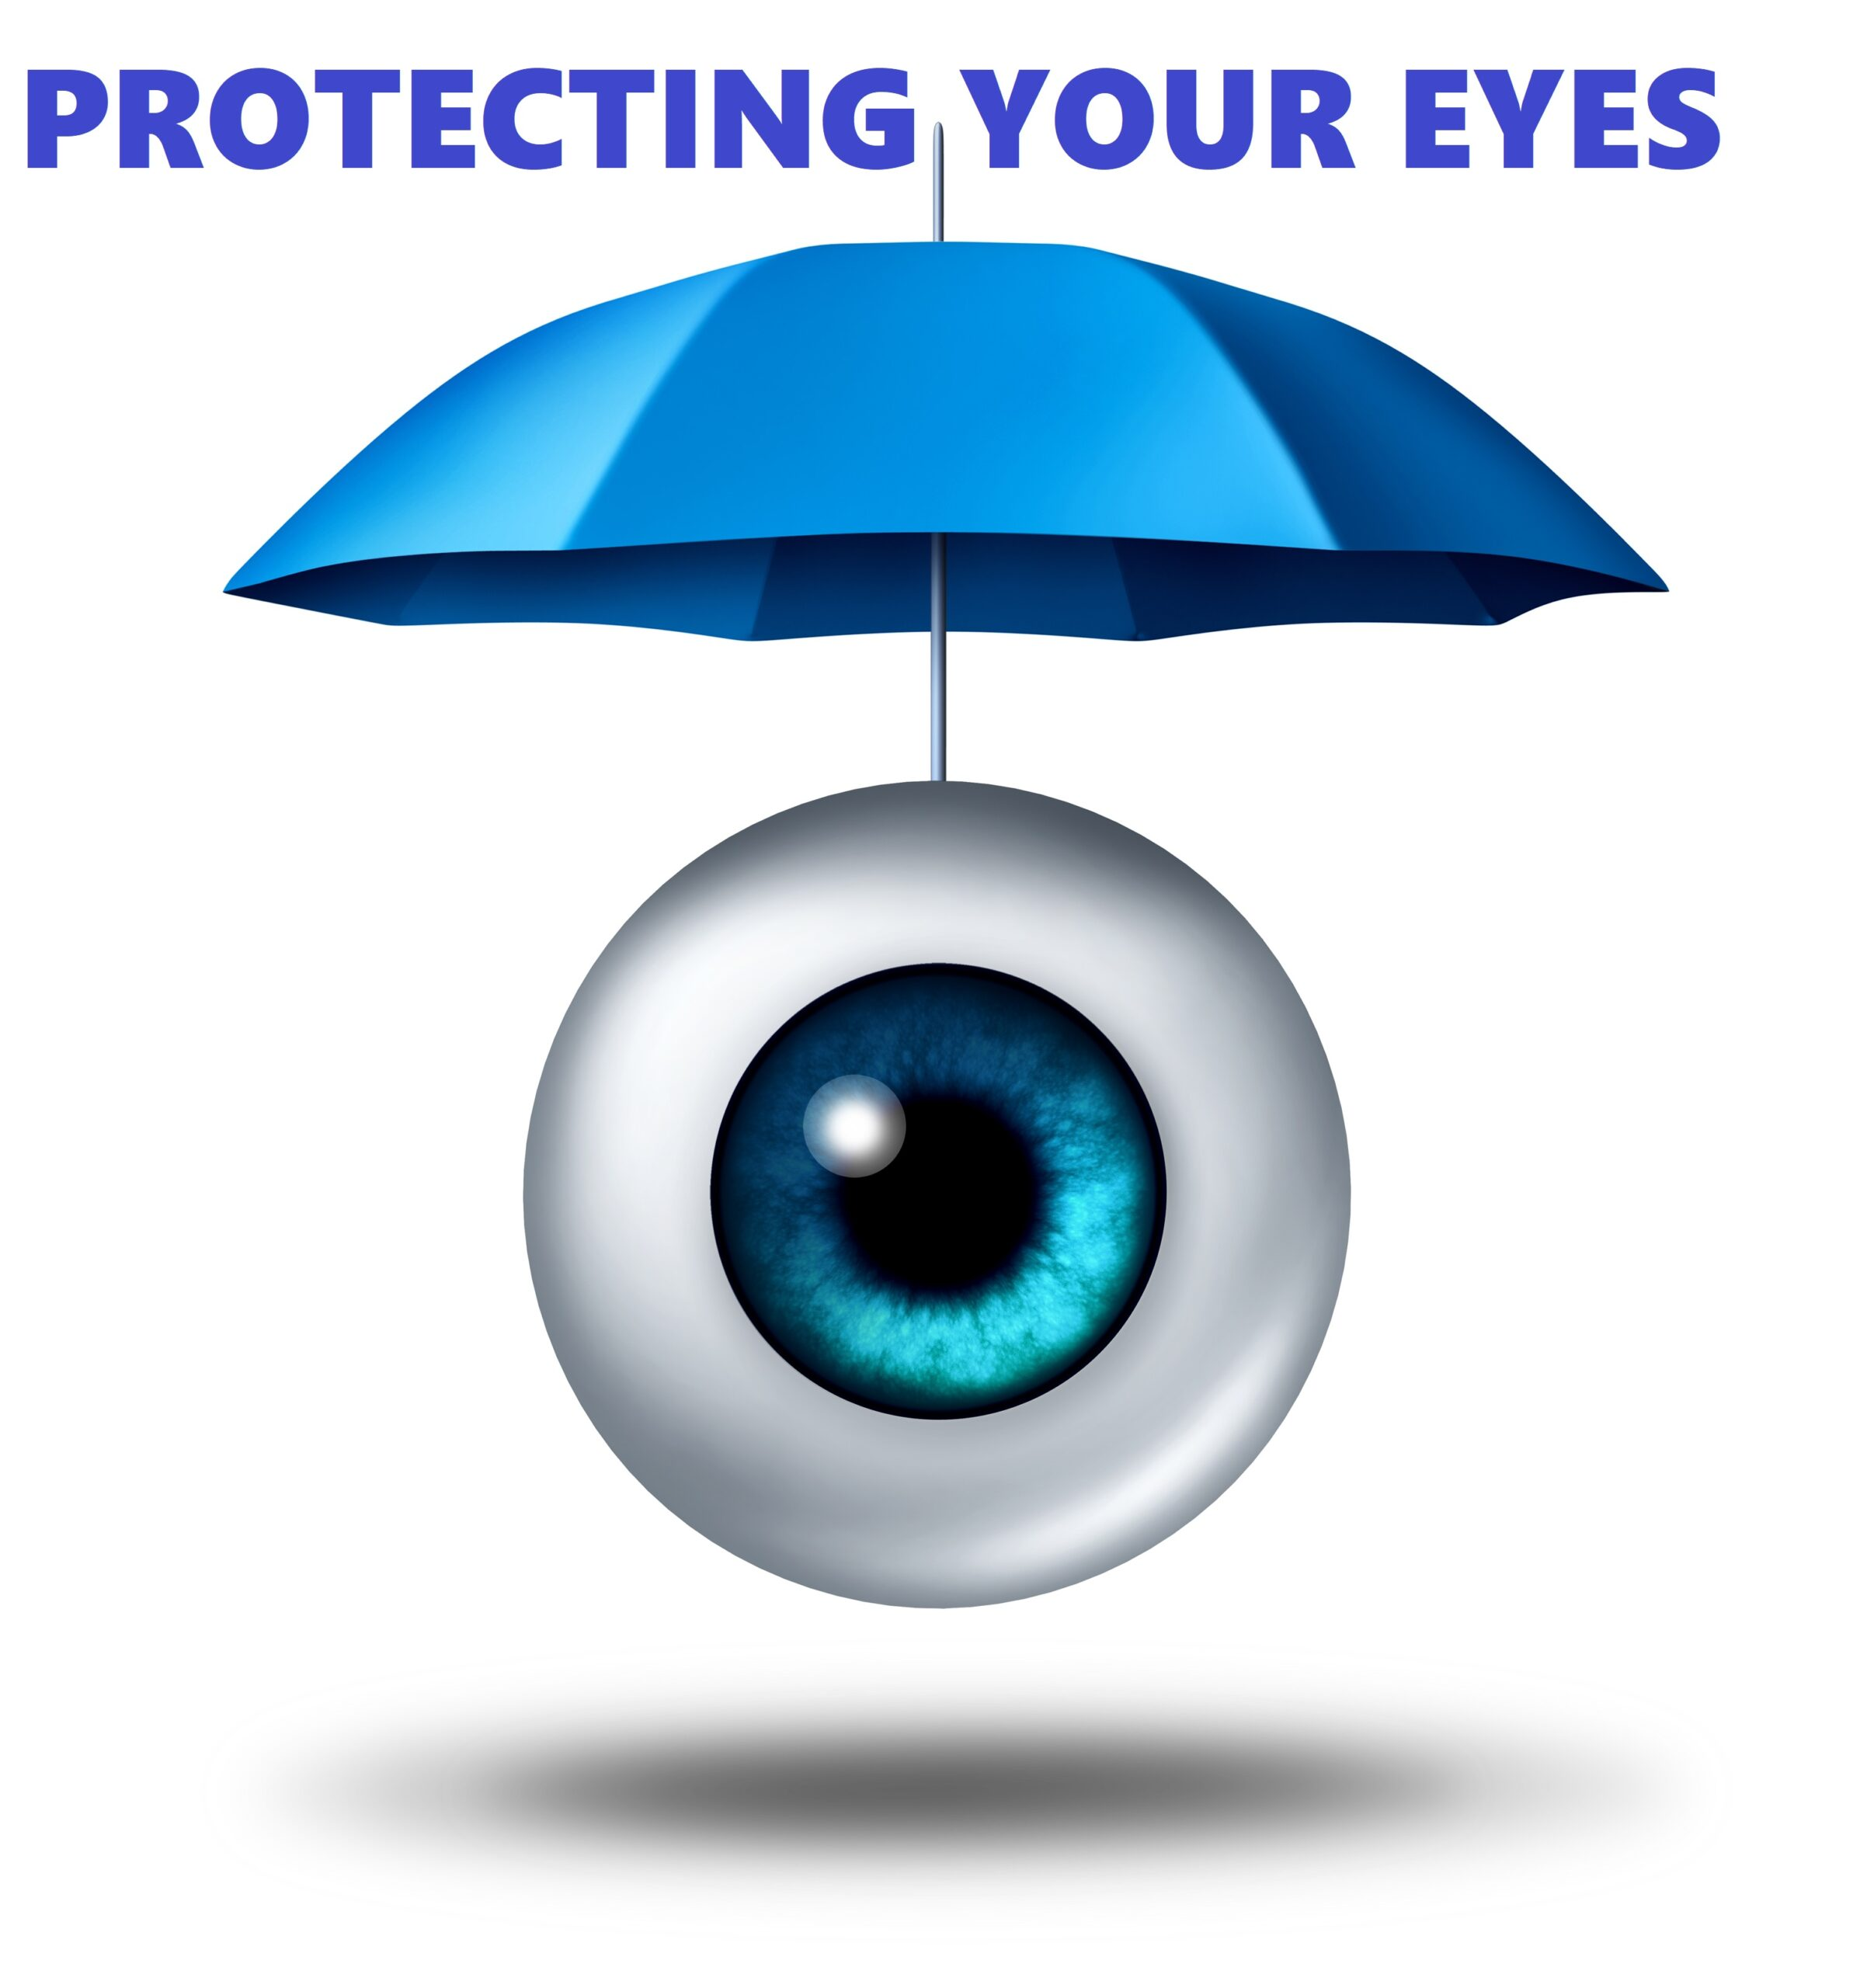 PROTECTING-YOUR-EYES-scaled